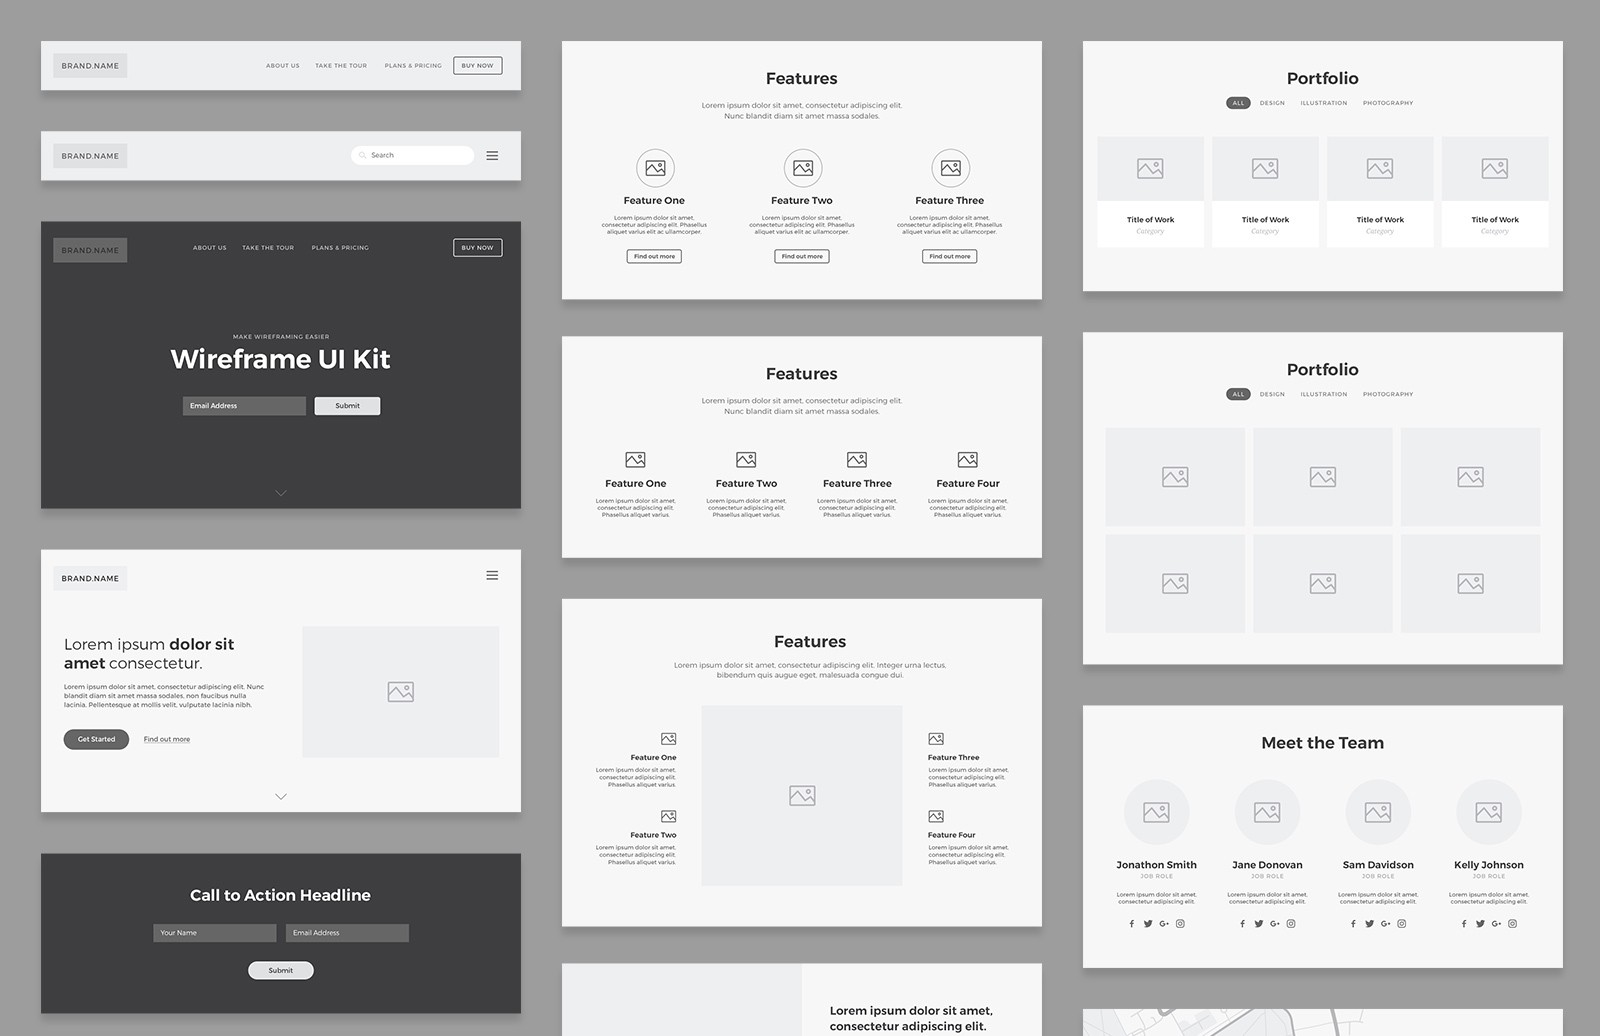 Card-Based Wireframe UI Kit